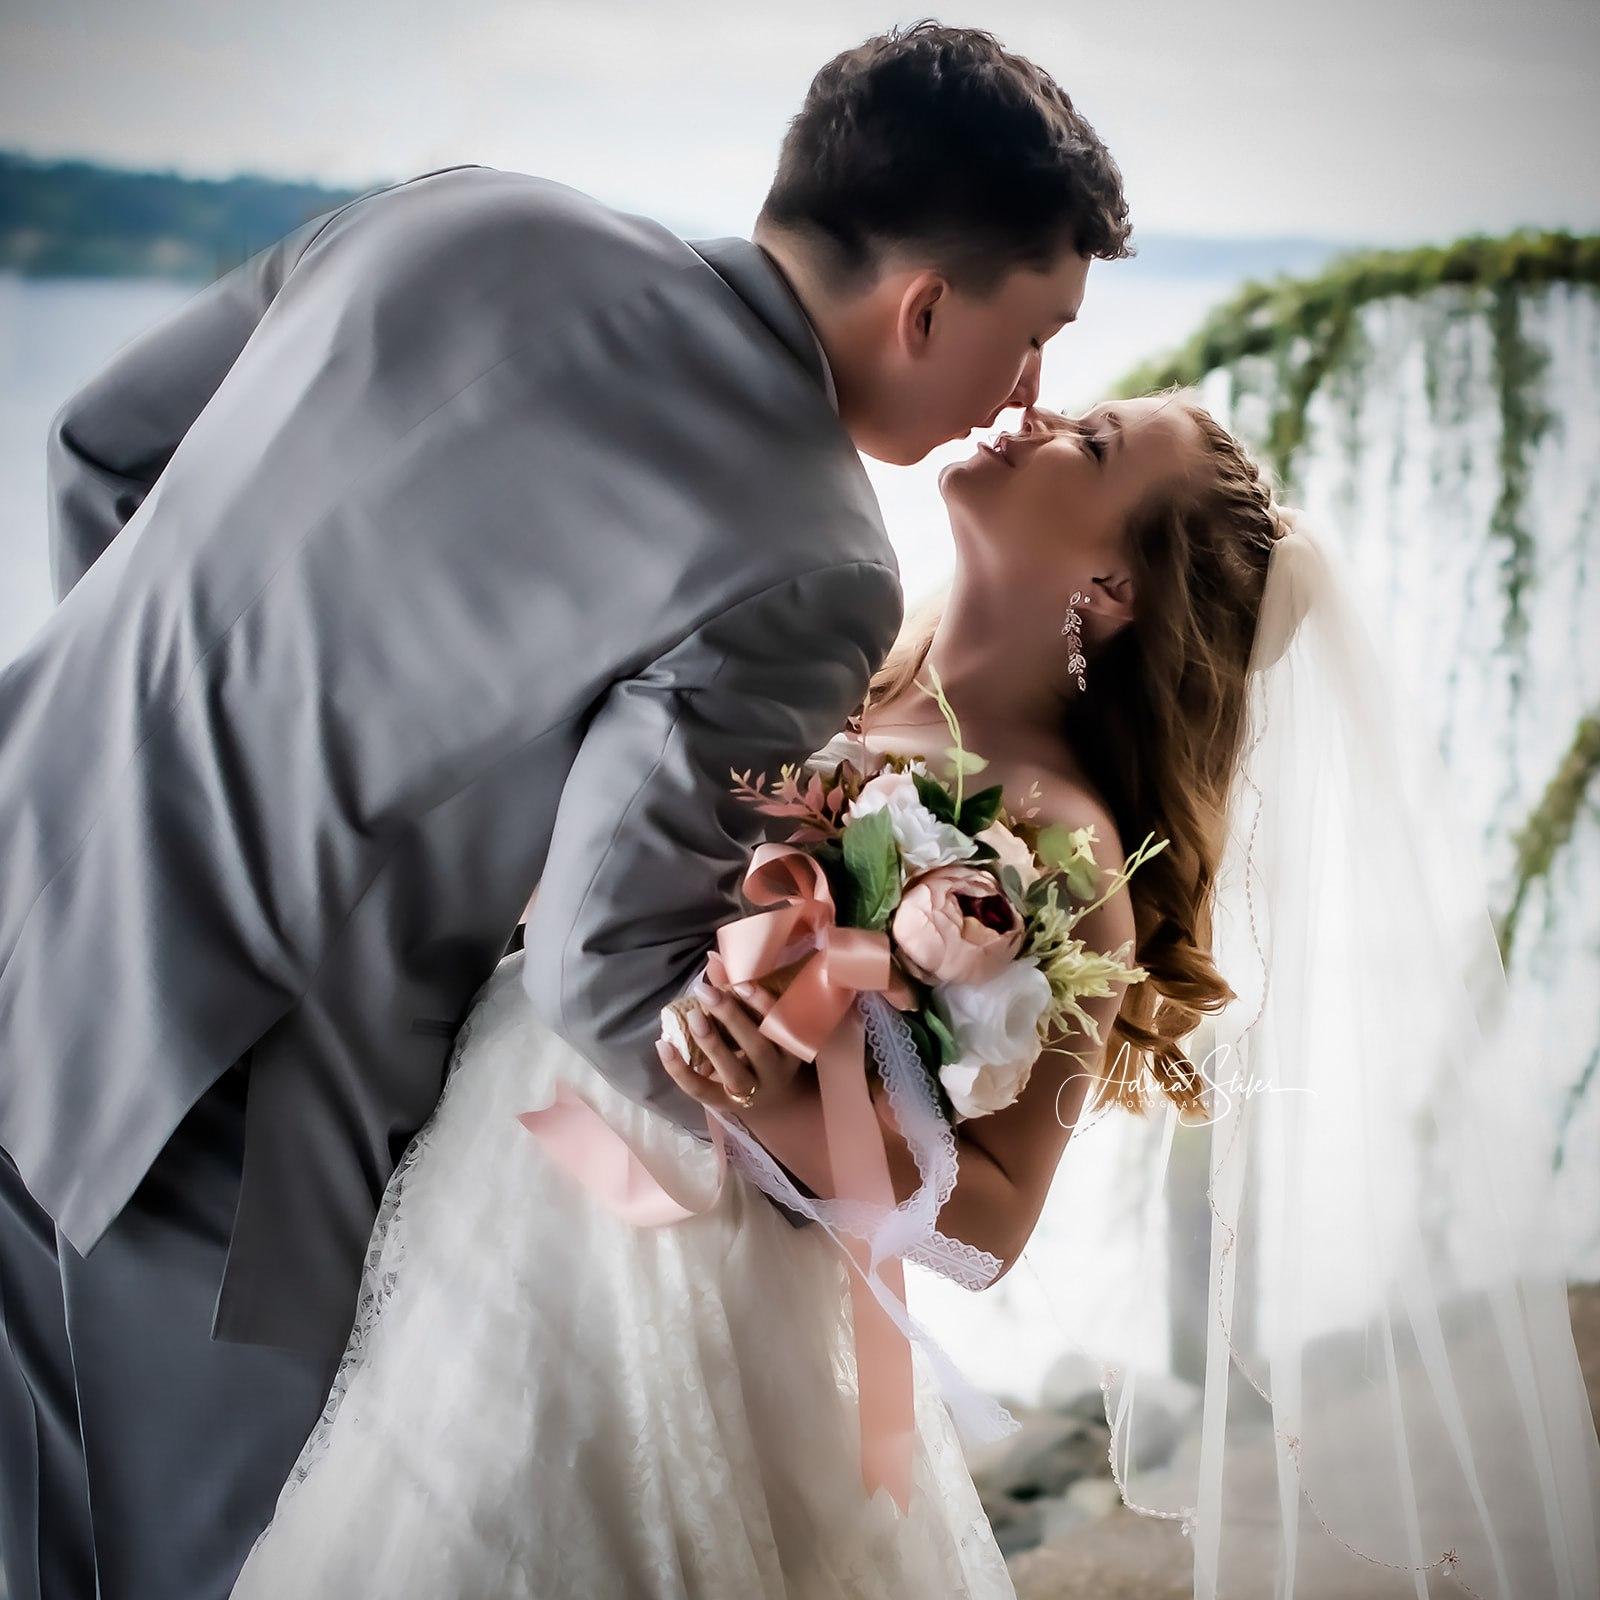 A bride and groom kiss at their last-minute wedding in Olalla, Washington.